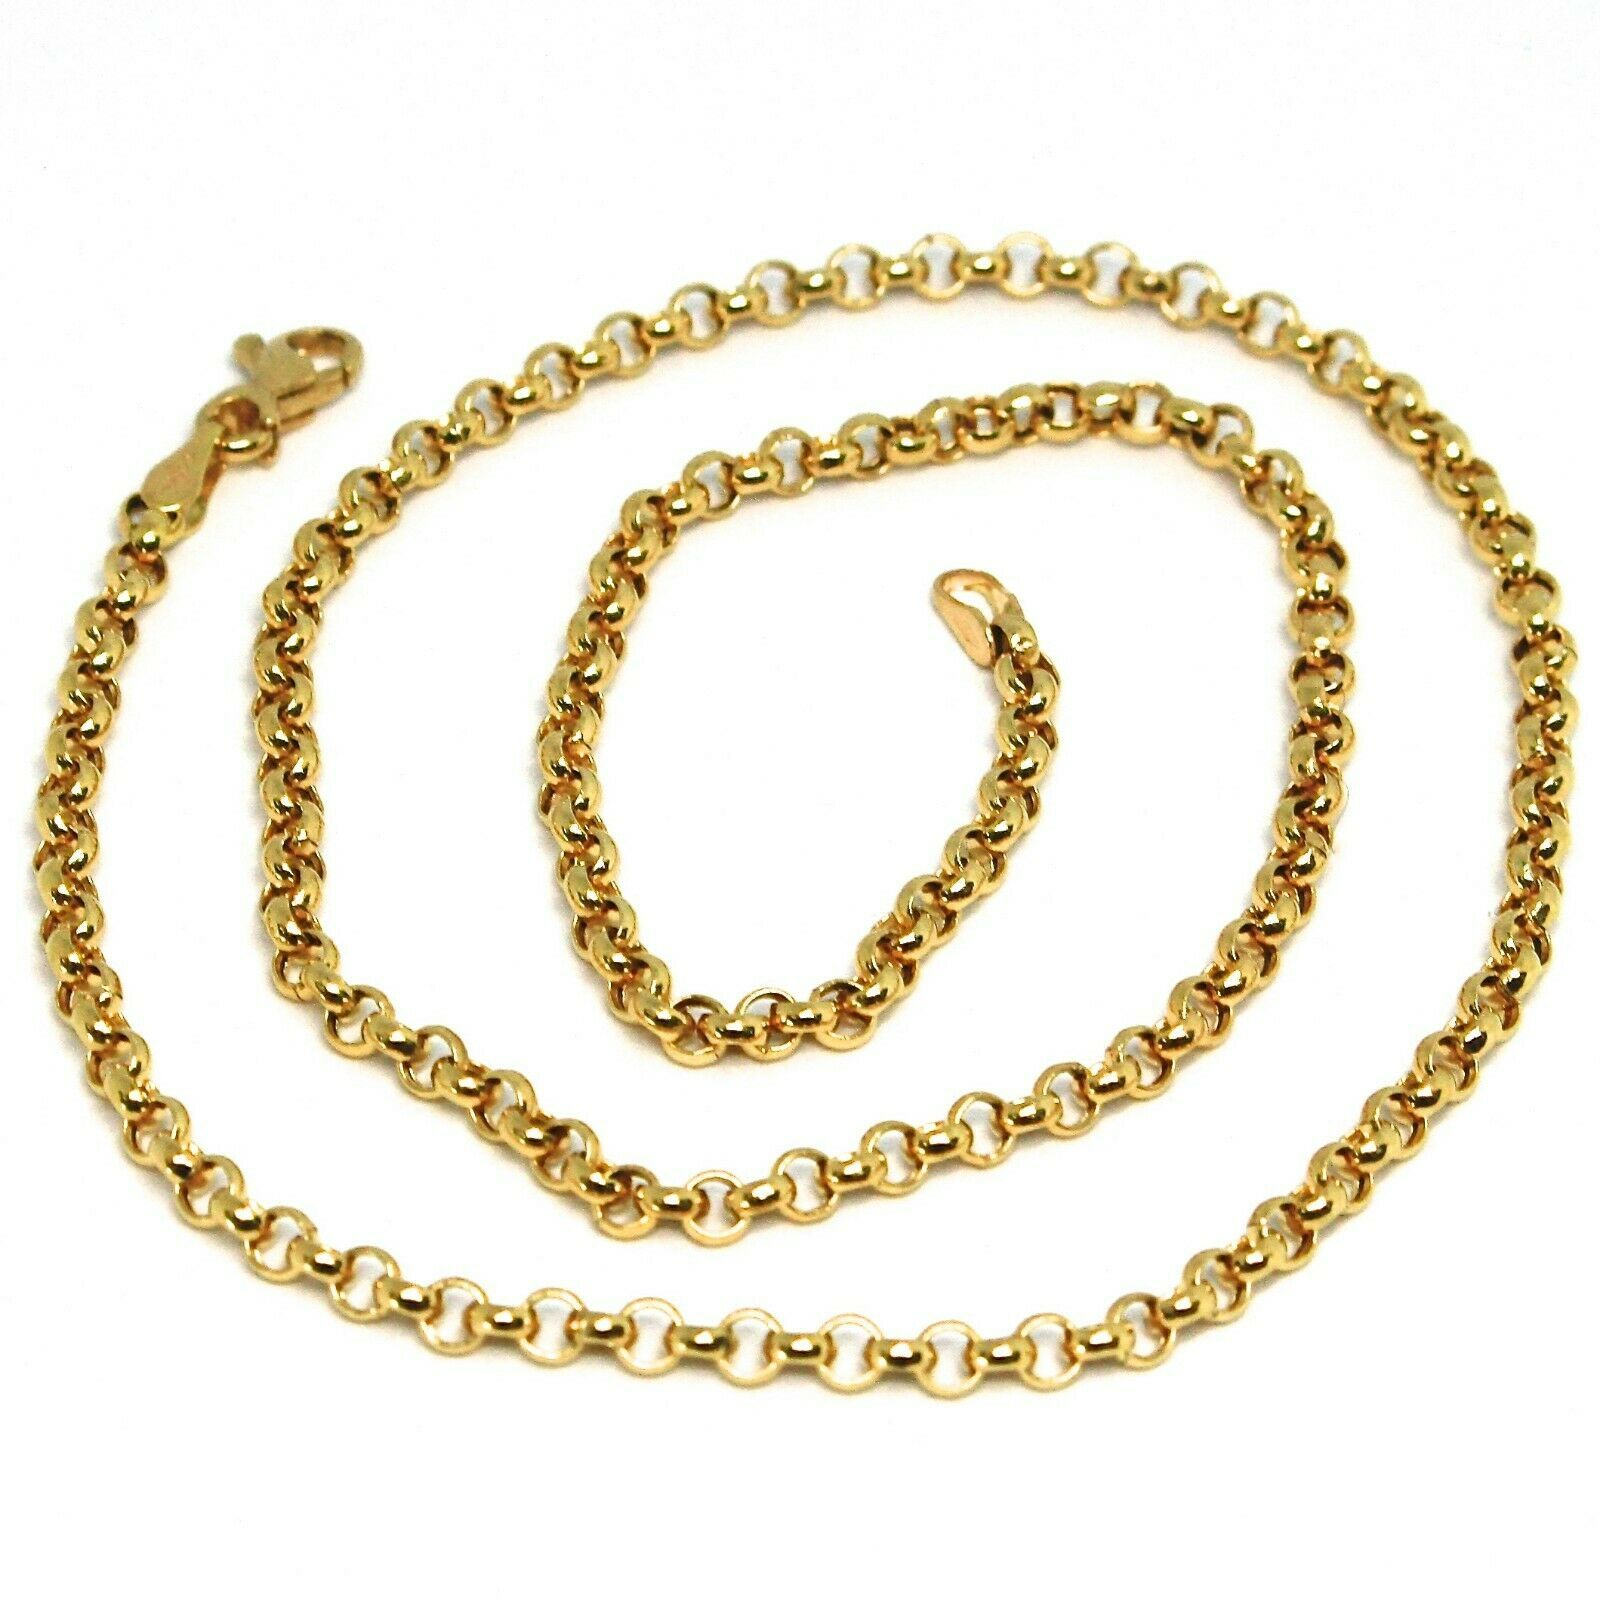 18K YELLOW GOLD ROLO CHAIN 2.5 MM, 18 INCHES, NECKLACE, CIRCLES, MADE IN ITALY